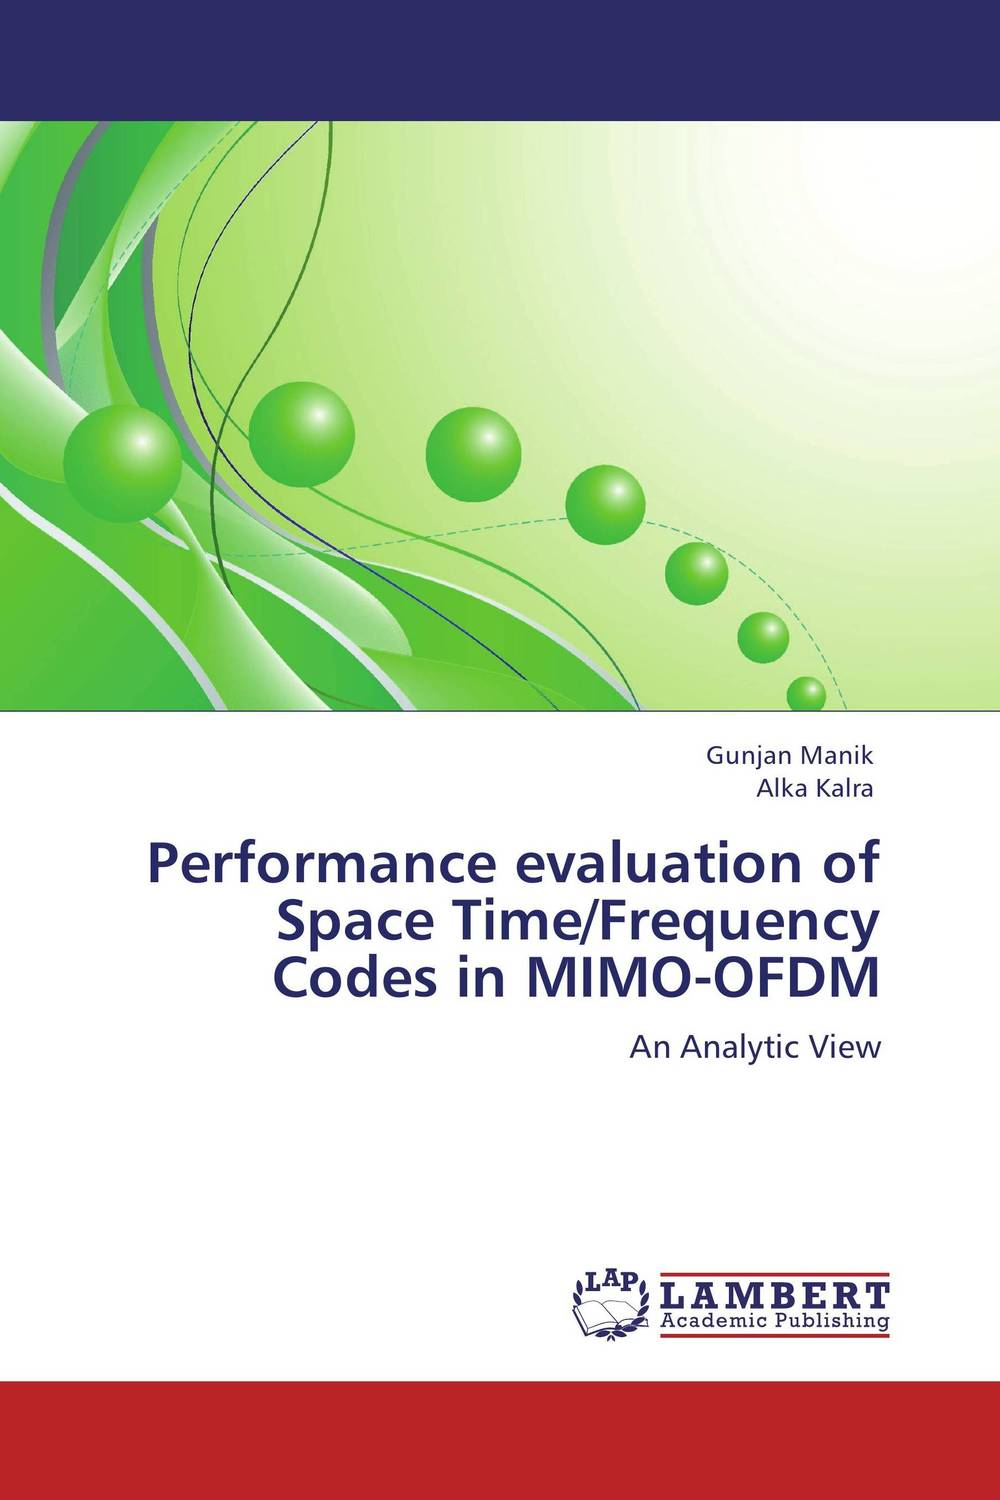 Performance evaluation of Space Time/Frequency Codes in MIMO-OFDM wireless ofdm and mimo ofdm communications